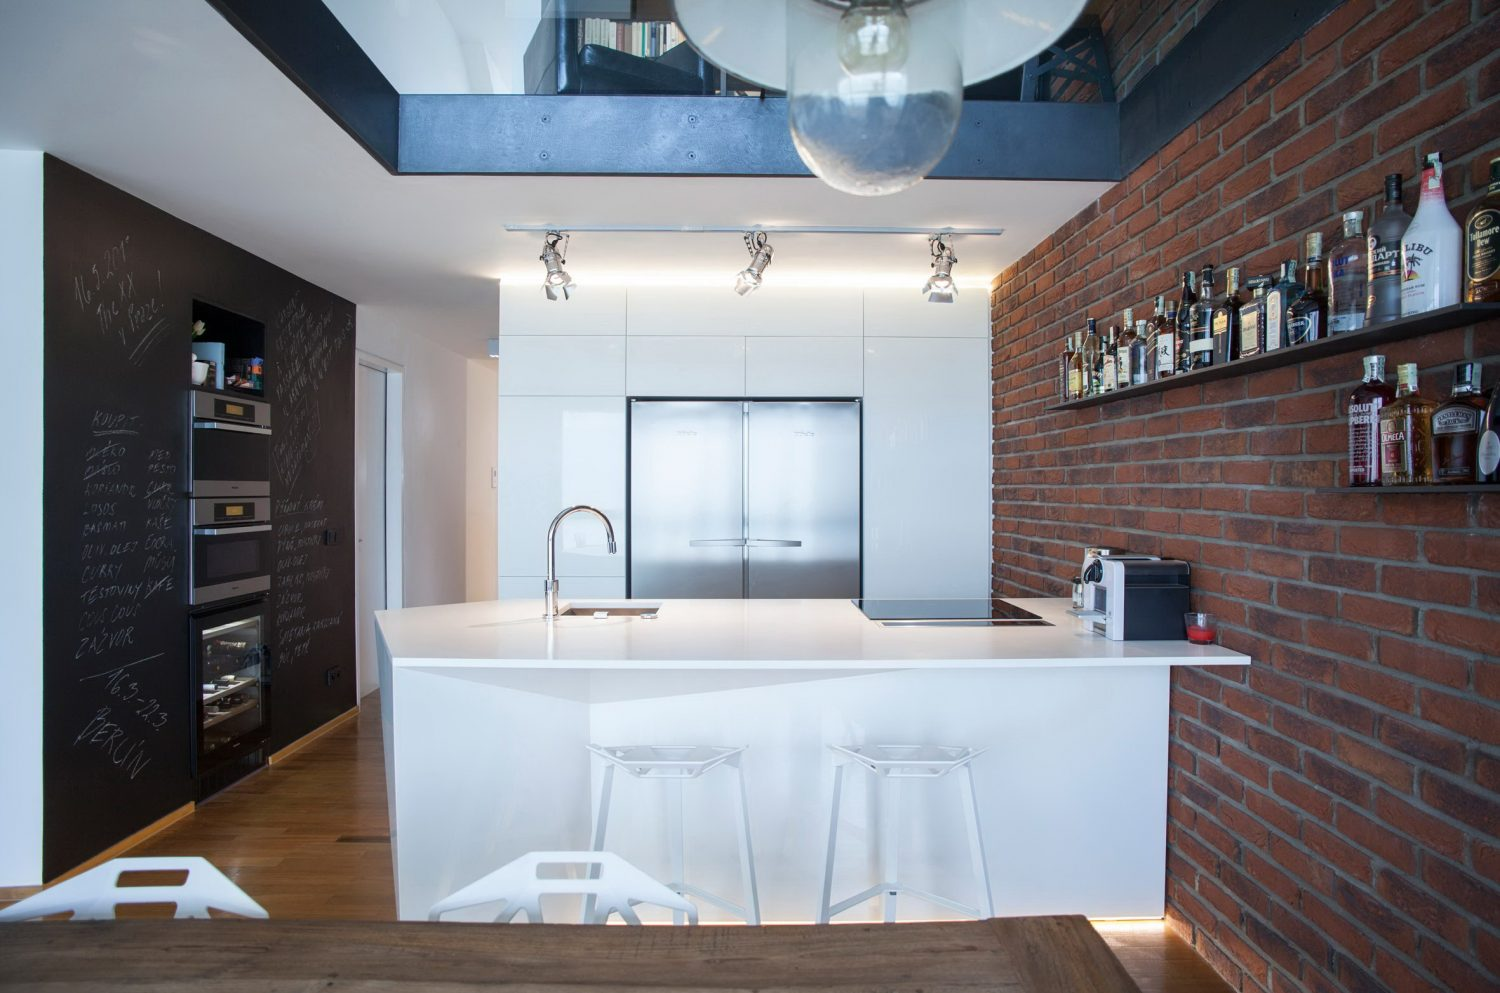 Cornlofts Triplex Reconstruction by B² Architecture